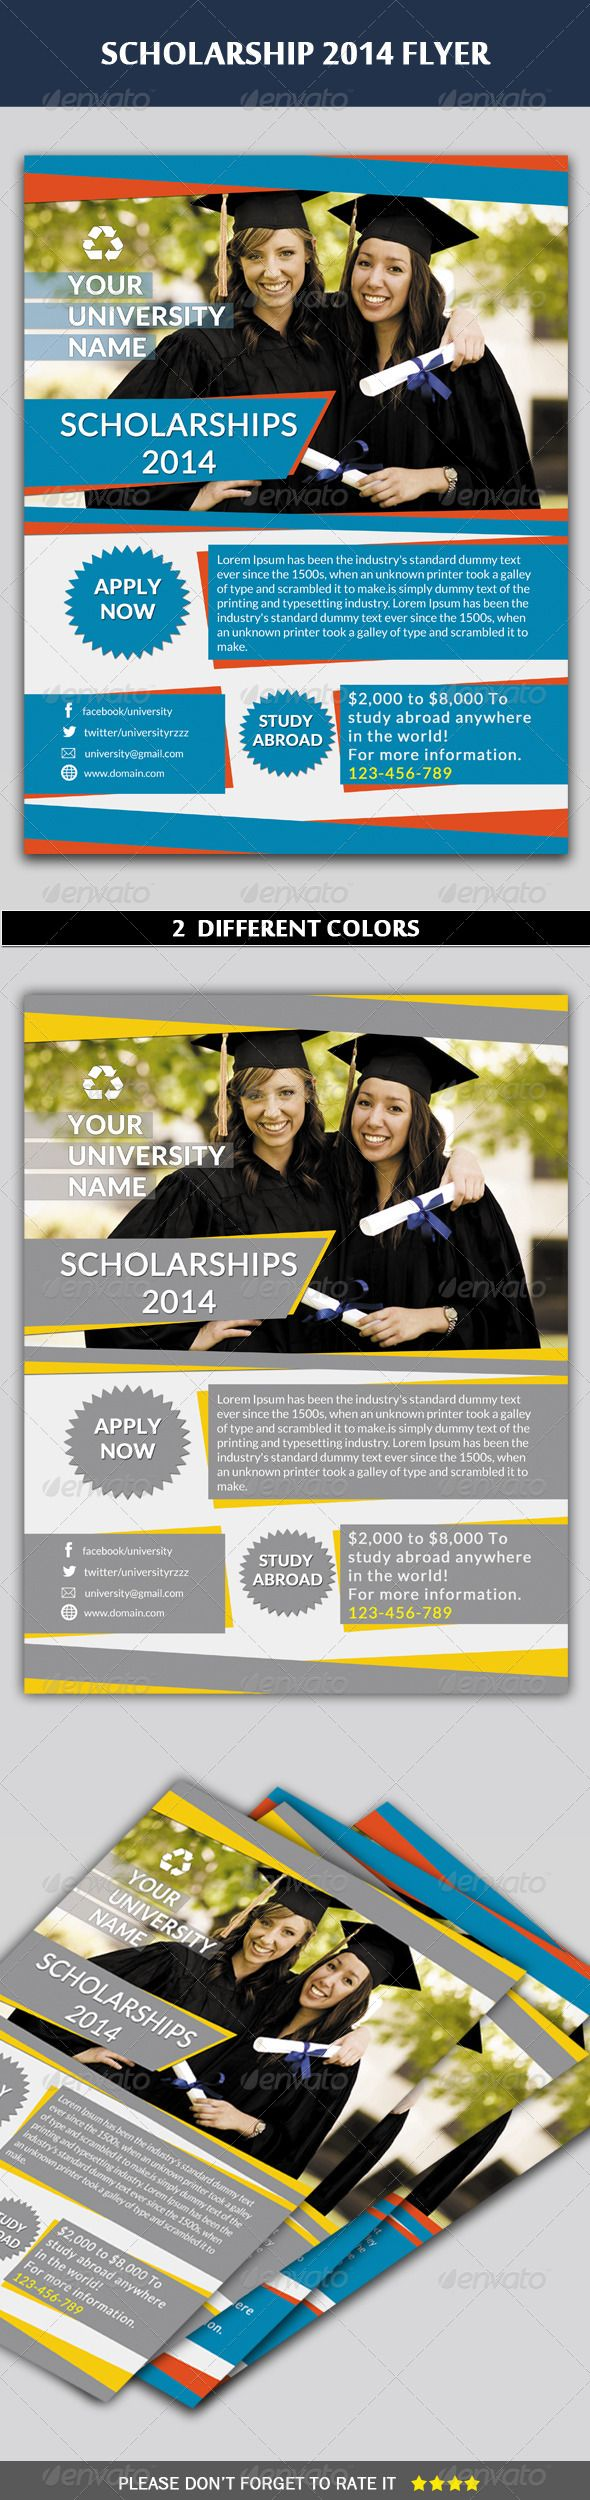 Scholarship Flyer | Scholarships, Flyer design templates ...